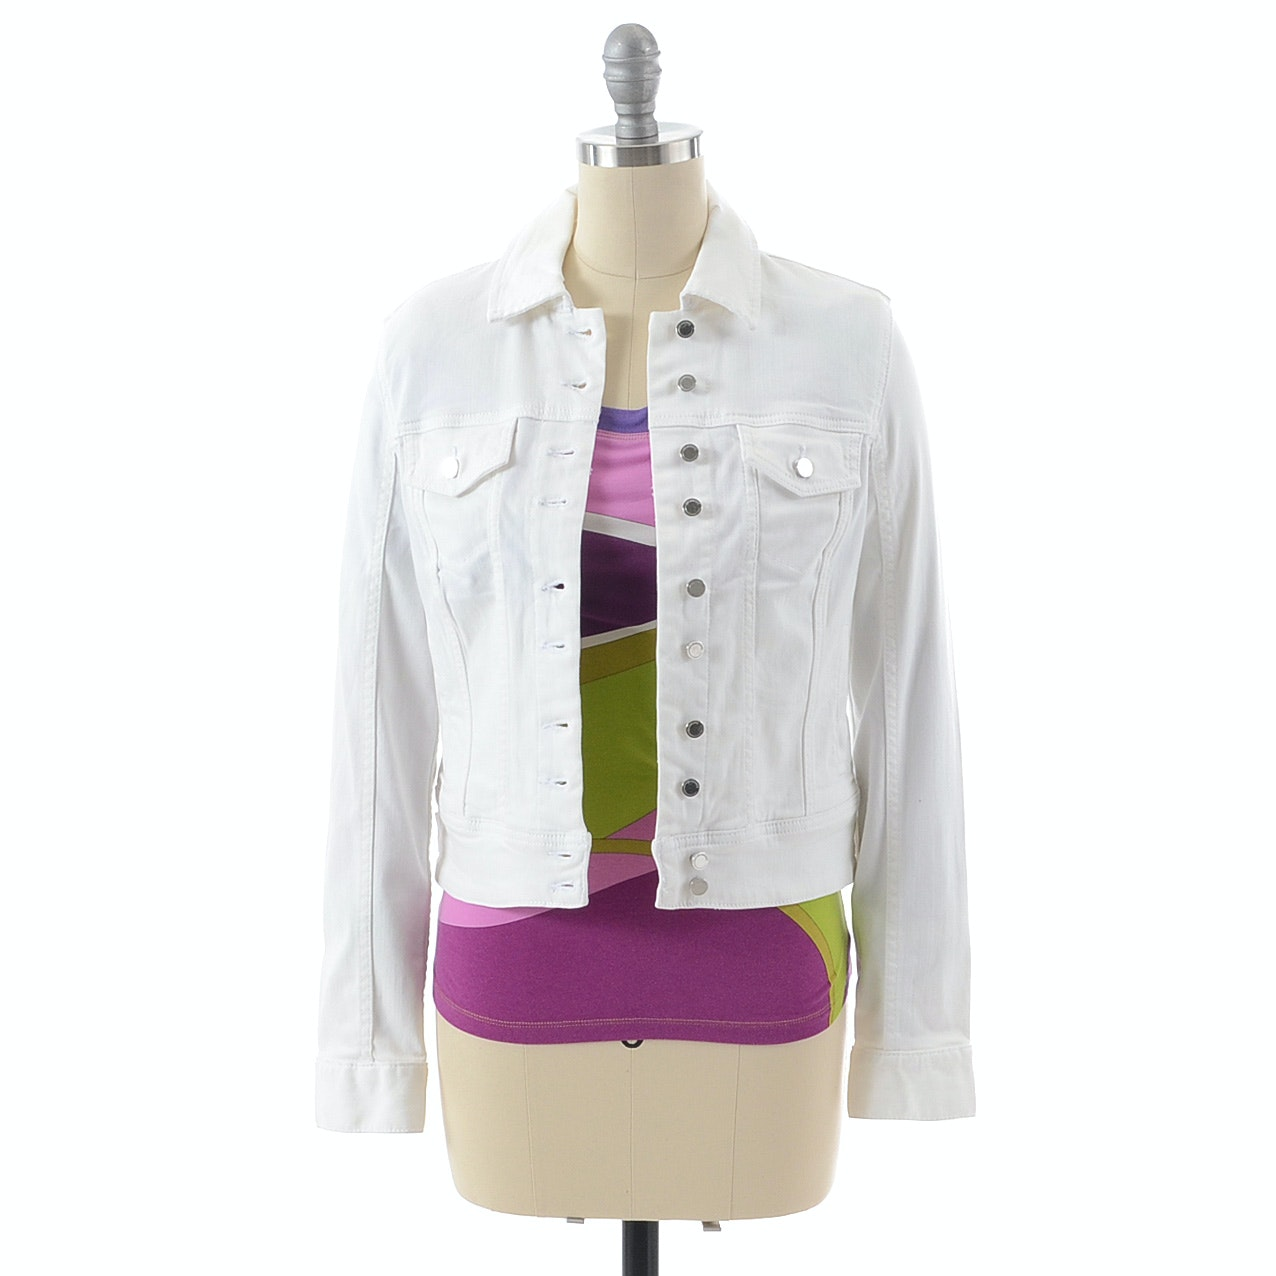 Emilio Pucci Top and Blank NYC White Denim Jacket